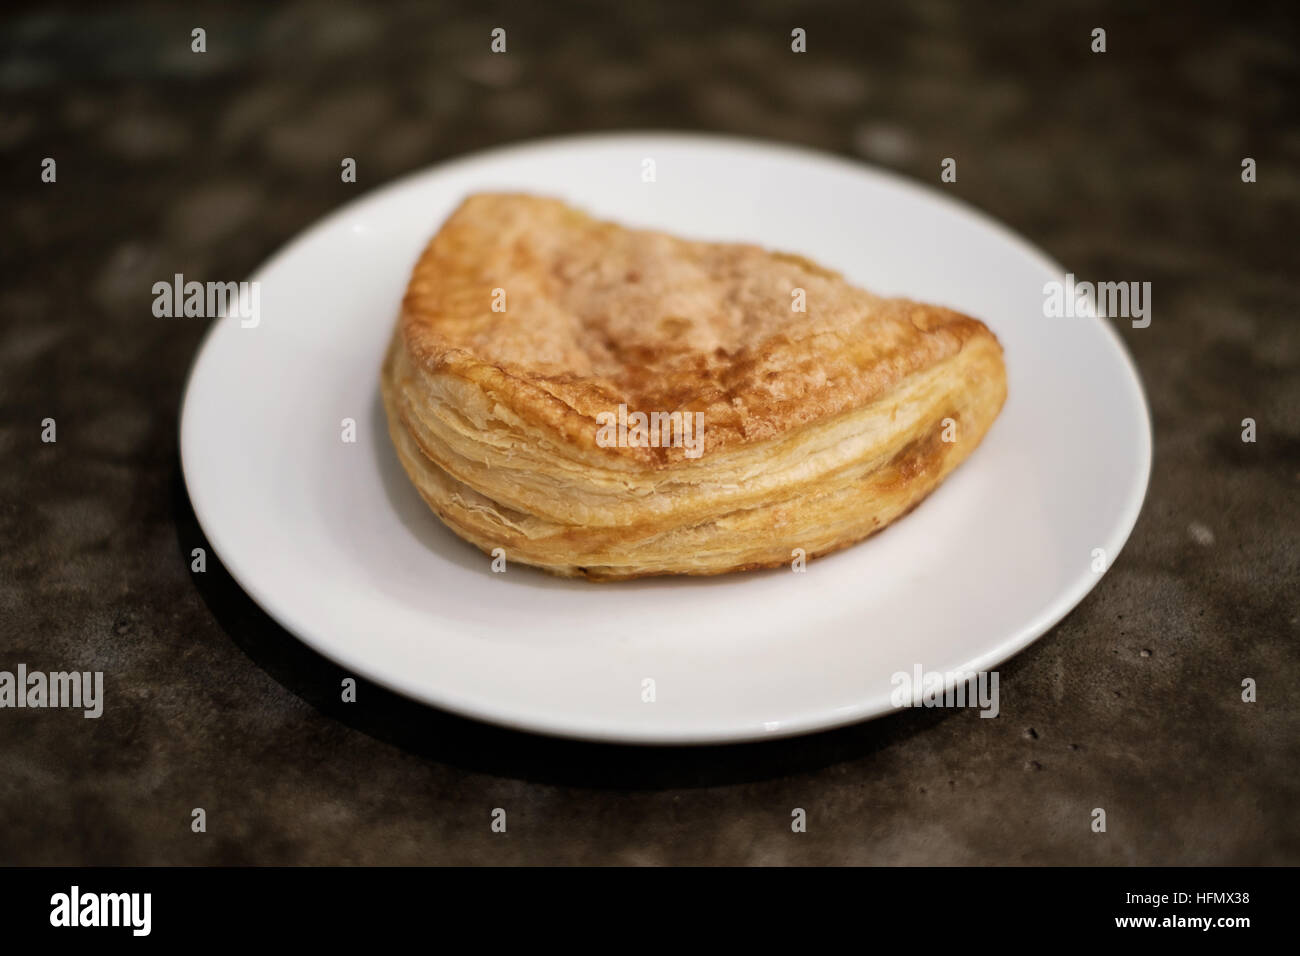 Baked apple puff turnover pastry in dish. - Stock Image